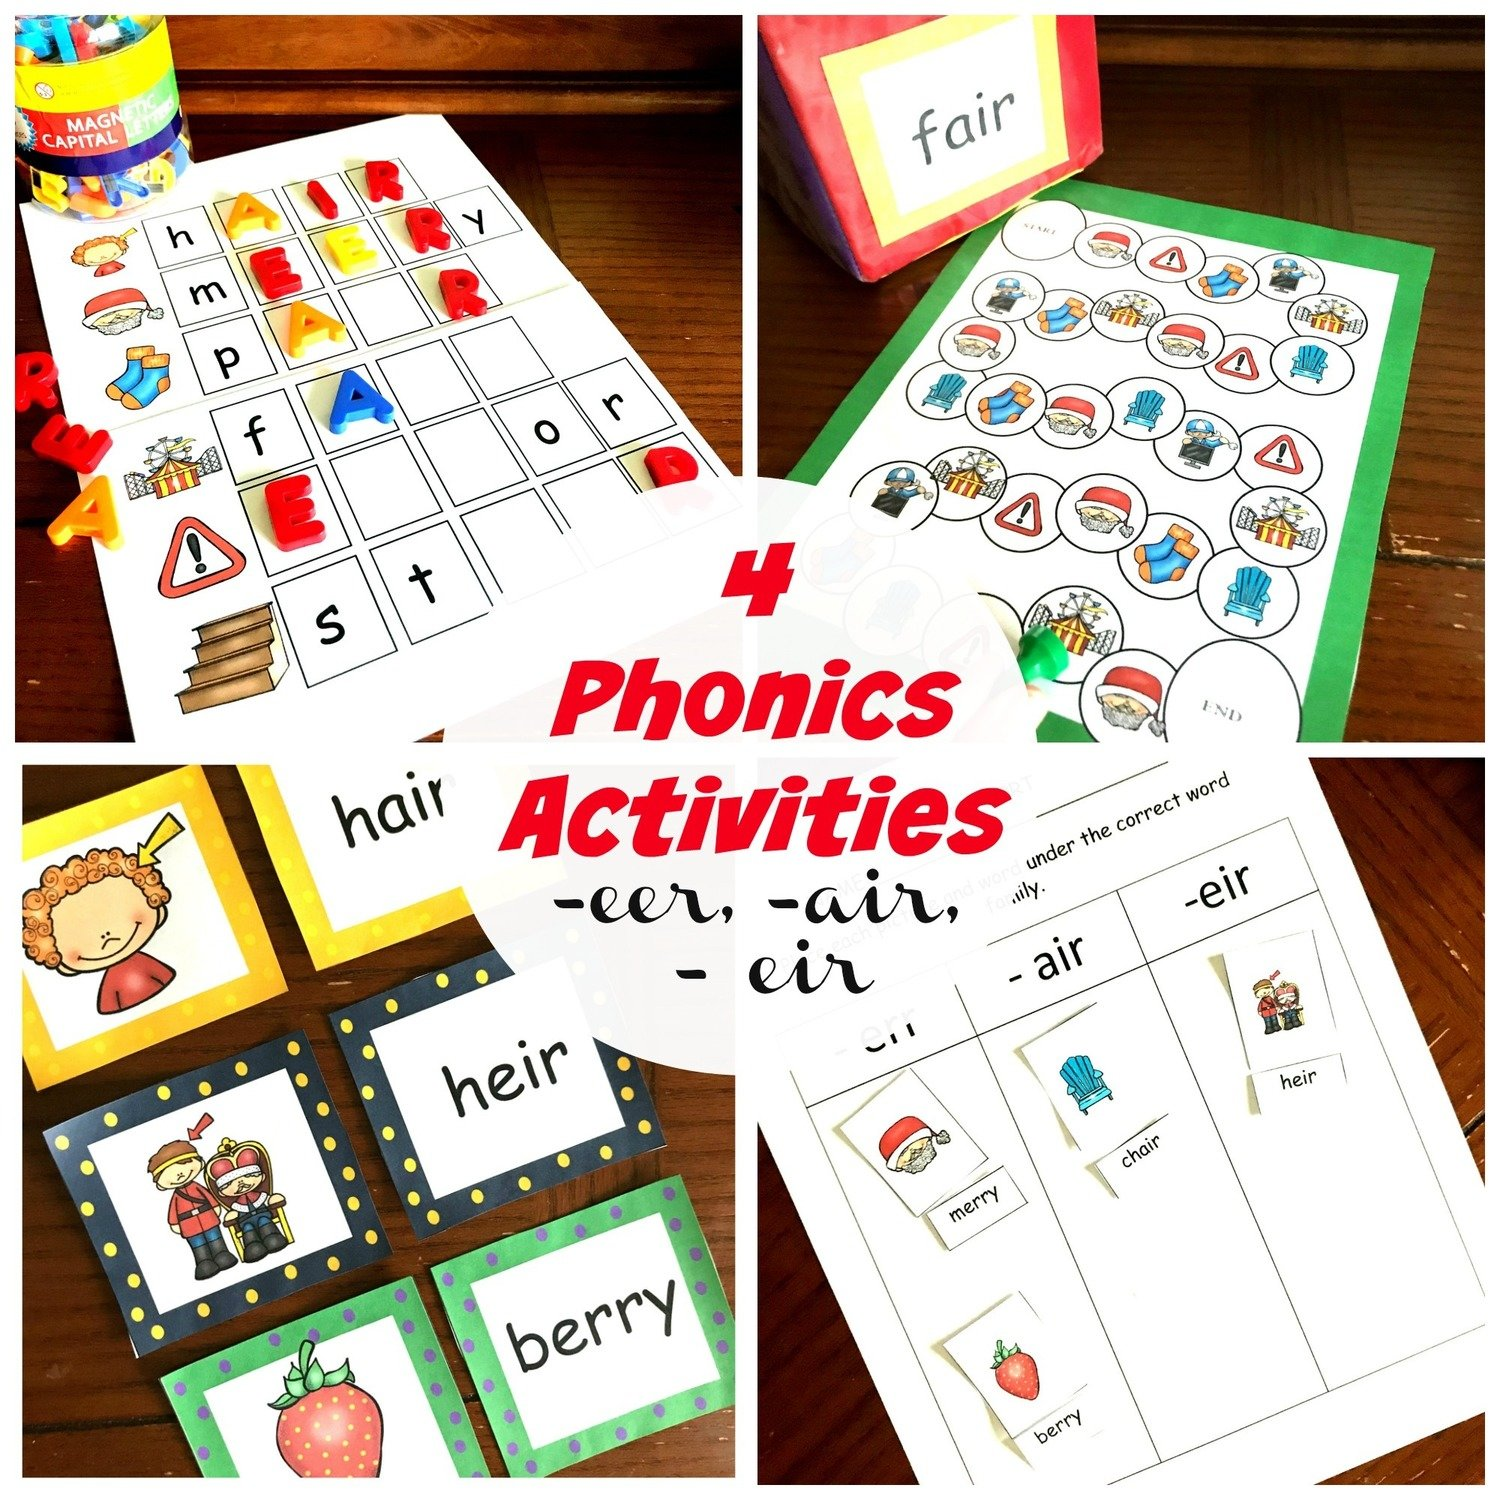 4 Activities for -eer, -eir, and -air Phonics